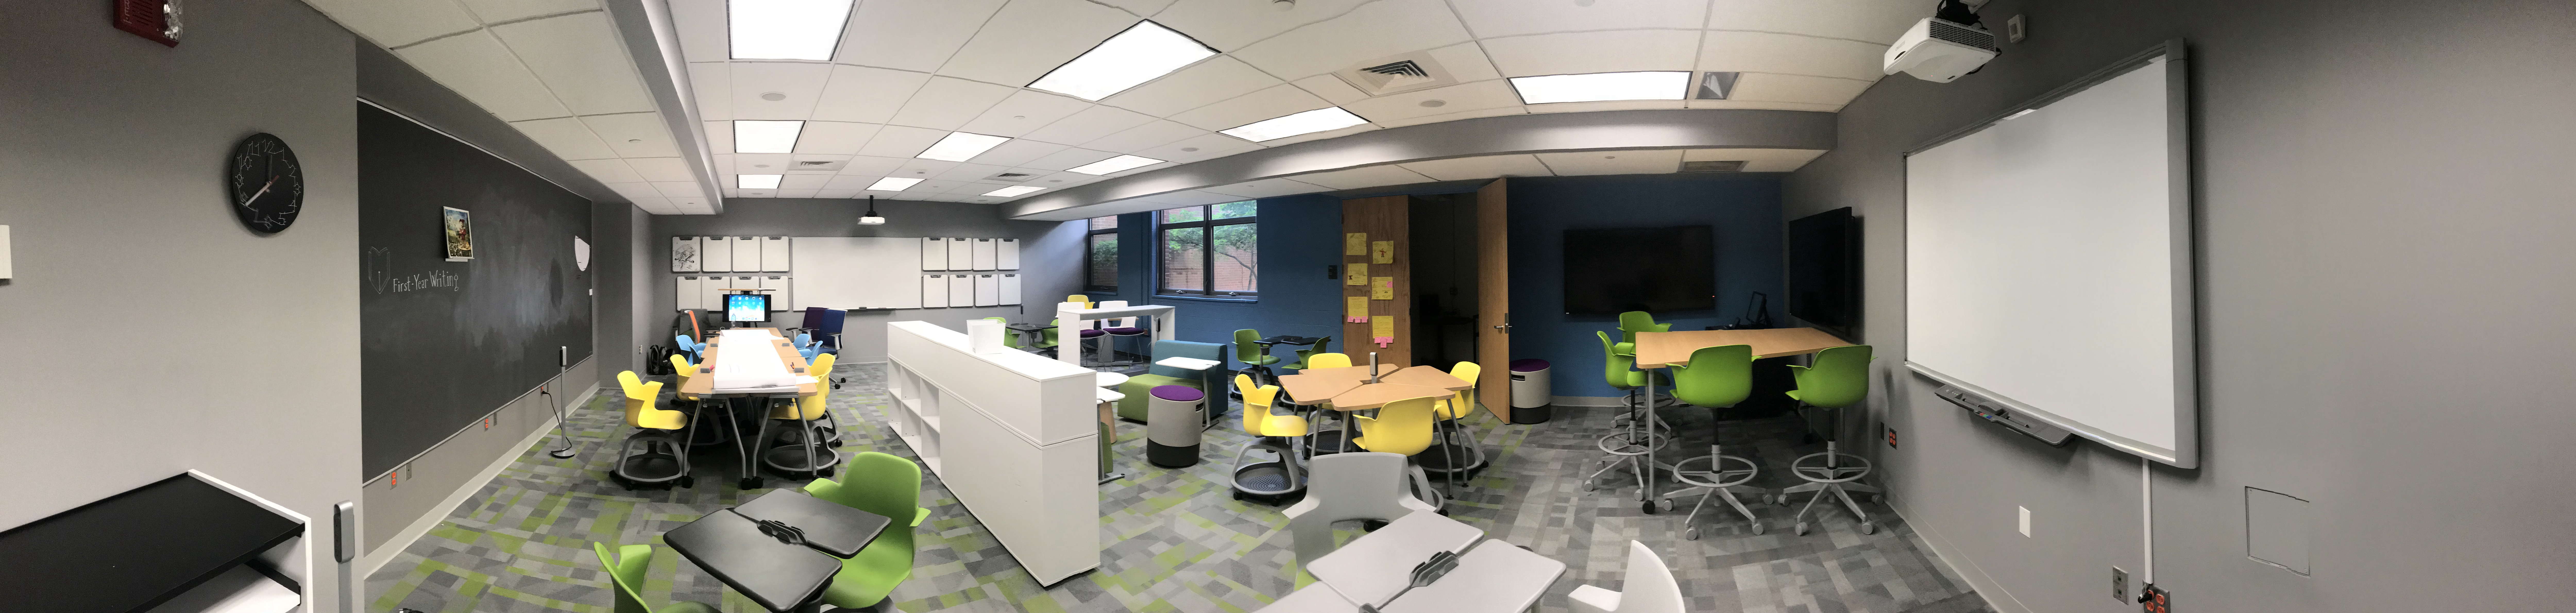 This image depicts a panorama of FYW's Active Learning Center (ALC). The ALC is a classroom with mobile technologies, such as handheld whiteboards and tables/chairs on casters. Technologies such as SMART boards, LCD screens, blackboards, and whiteboards hang on the walls.